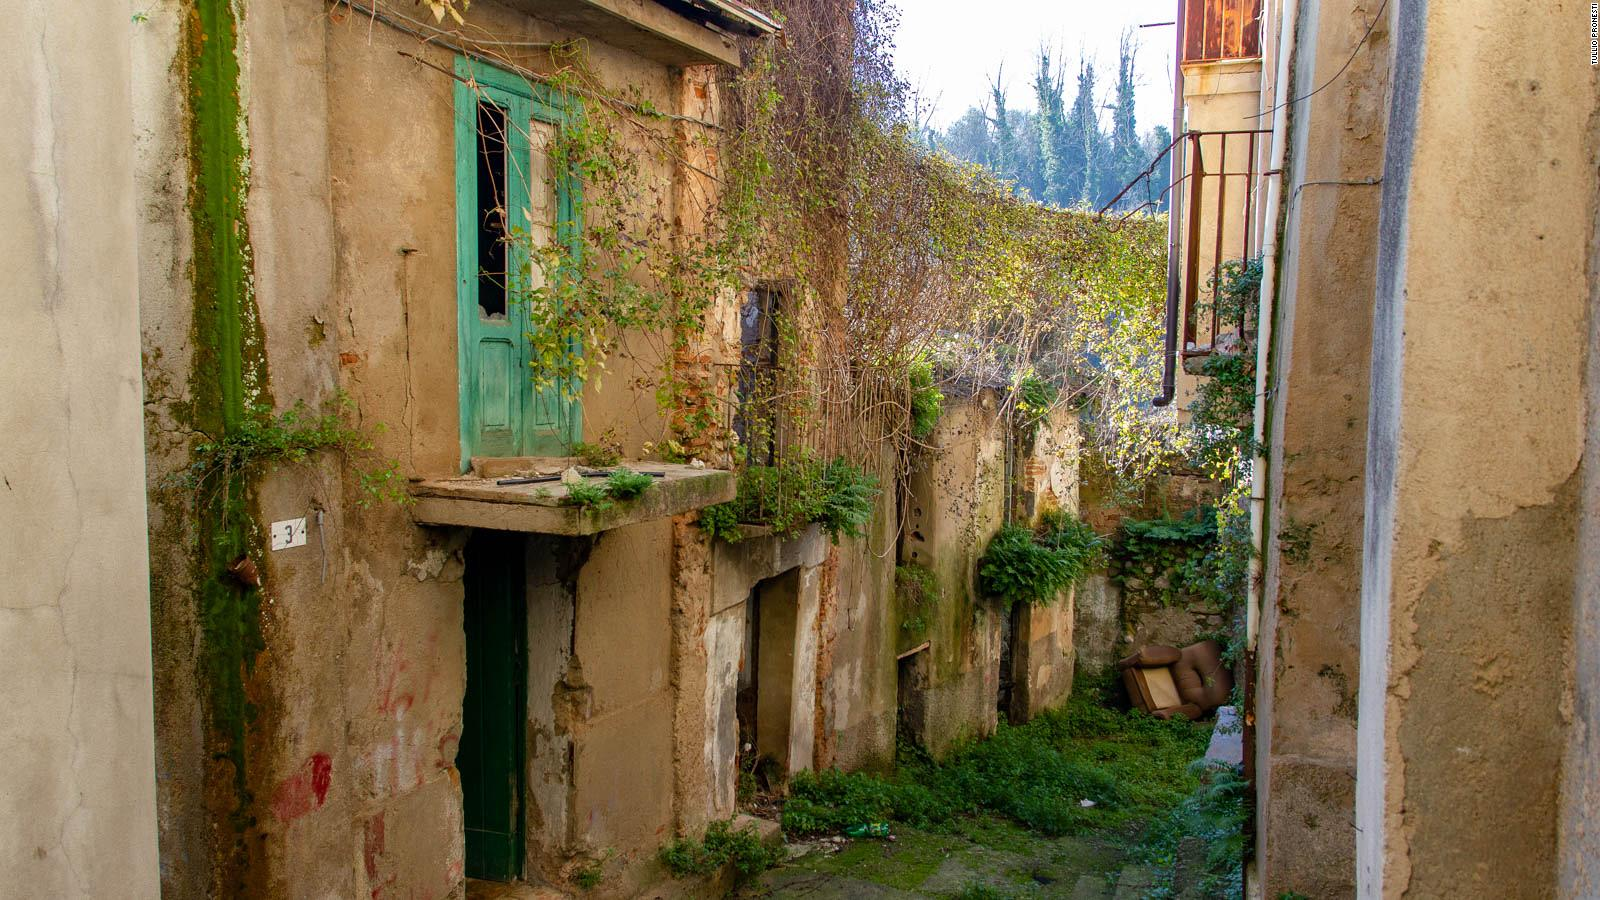 Cinquefrondi The Covid Free Italian Town Selling 1 Houses Cnn Travel,Bedroom Sets Rooms To Go Kids